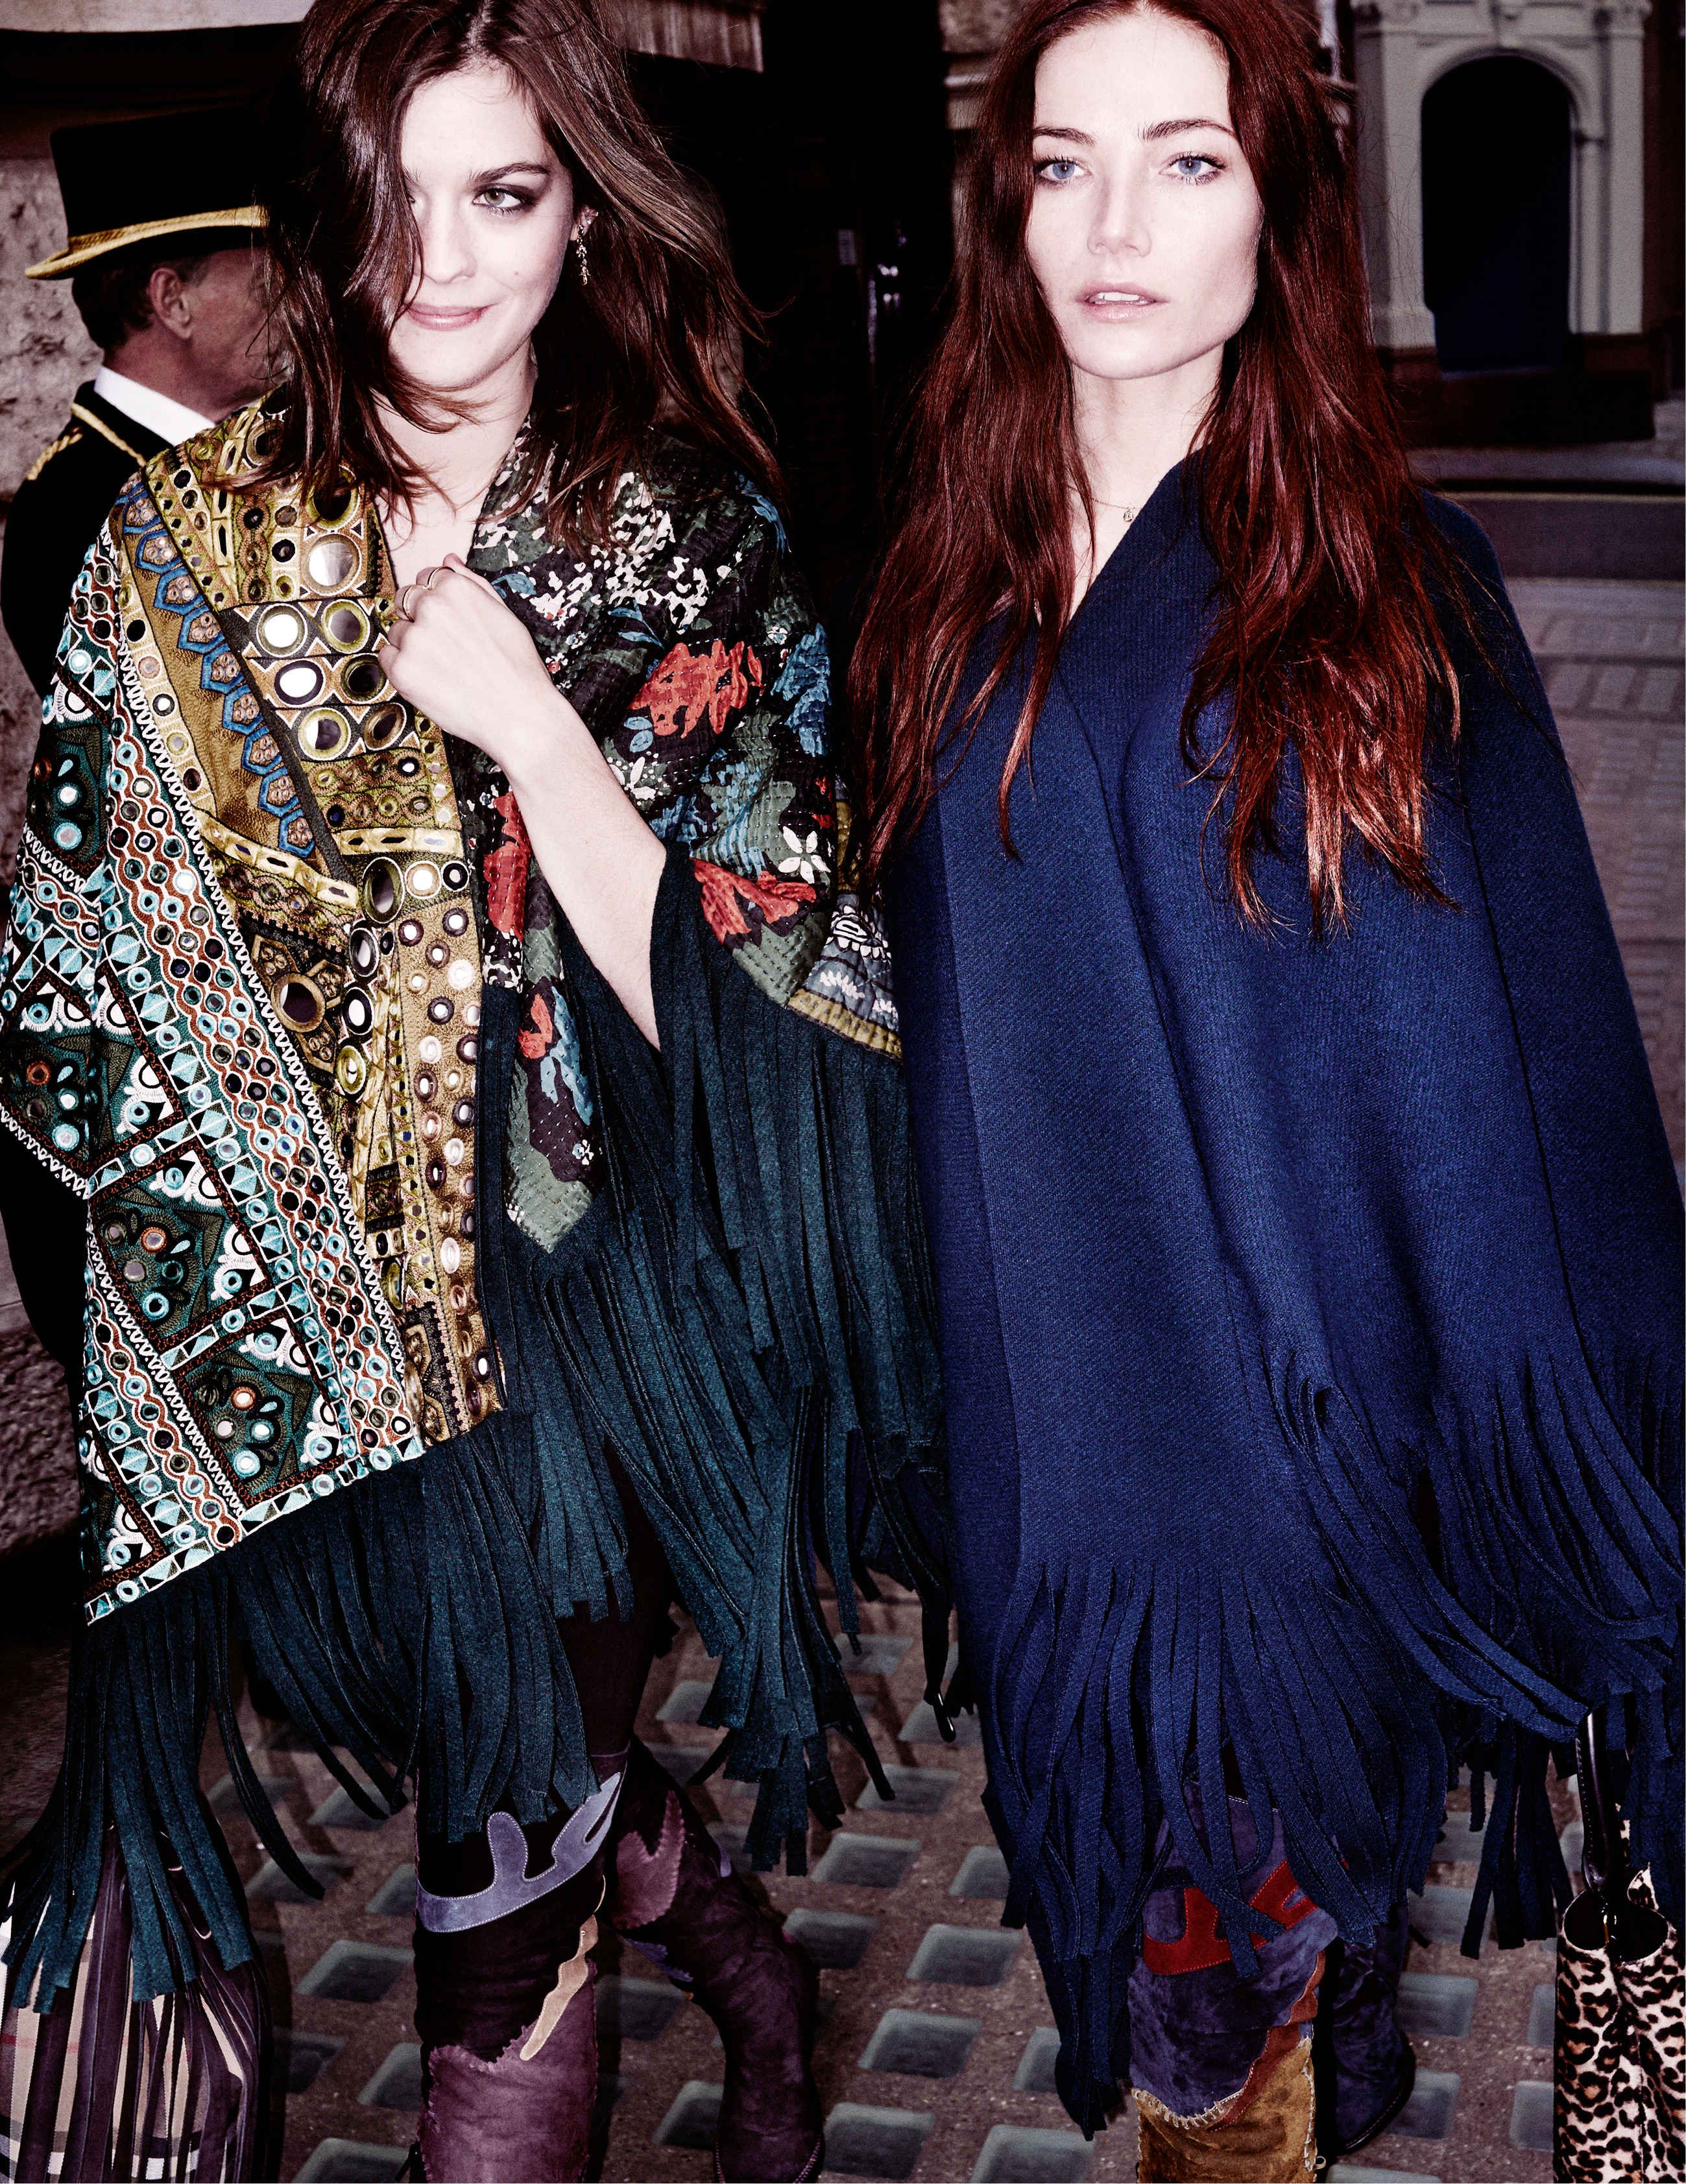 Mario Testino Gives Burberry a Striking New Look for Fall - Fashionista